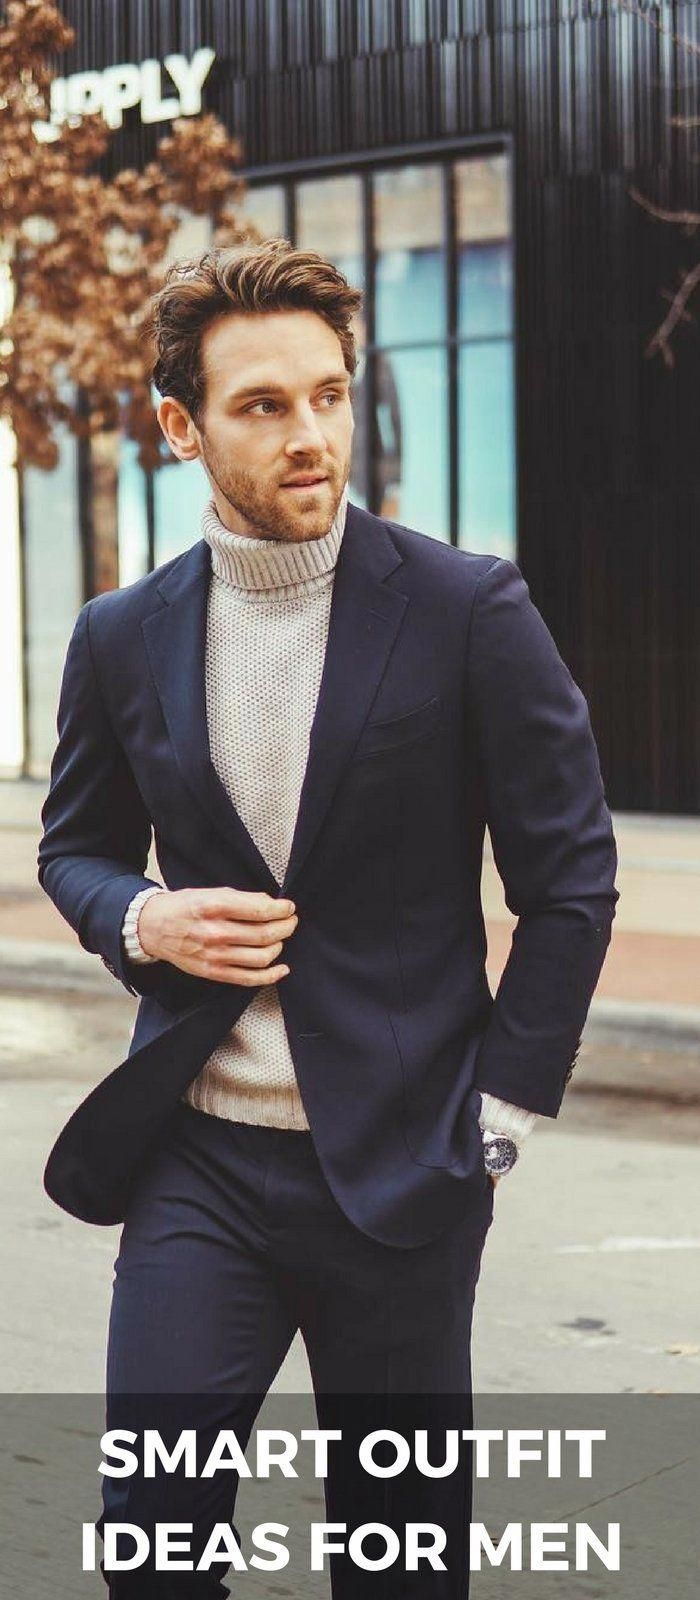 12 Smart Outfit ideas To Help You Look Your Best – LIFESTYLE